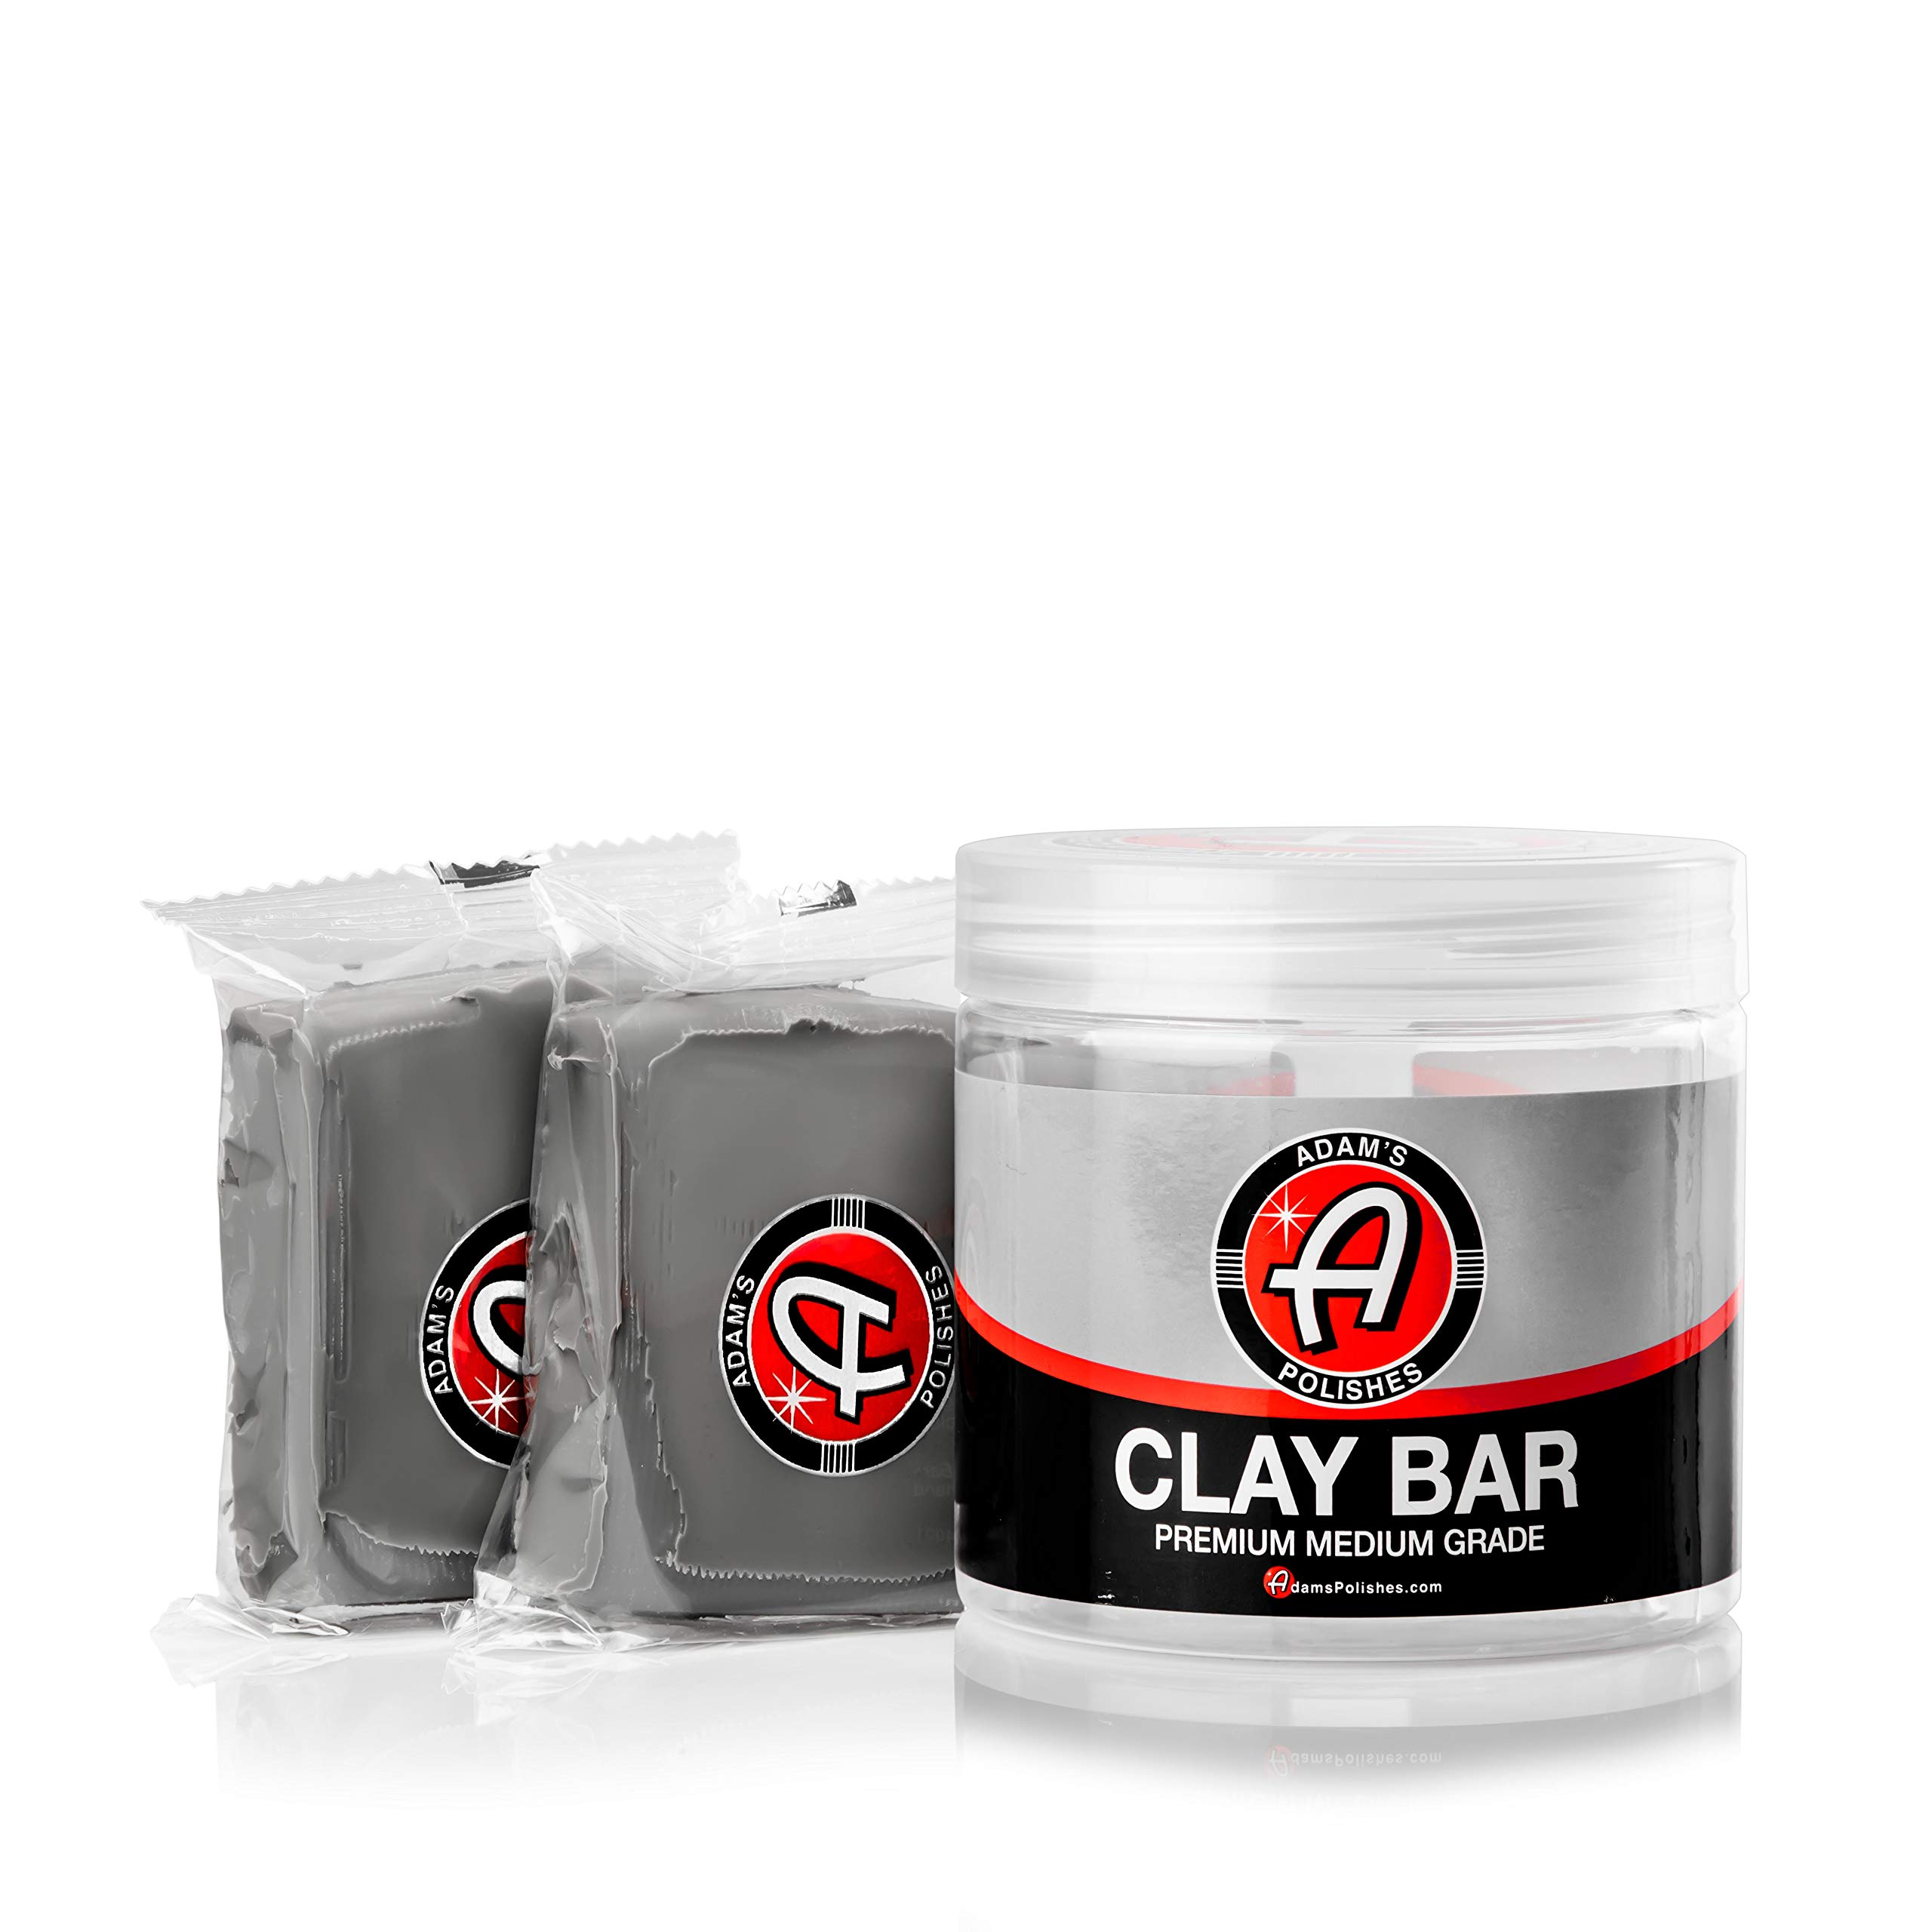 Adam's Clay Bar Jar 2 100g Detailing Bars - Soft Medium Grade Material - Remove Contamination & Grime with Ease for Post Wash or Before Polisher Wax, Sealant or Ceramic Coating Applications